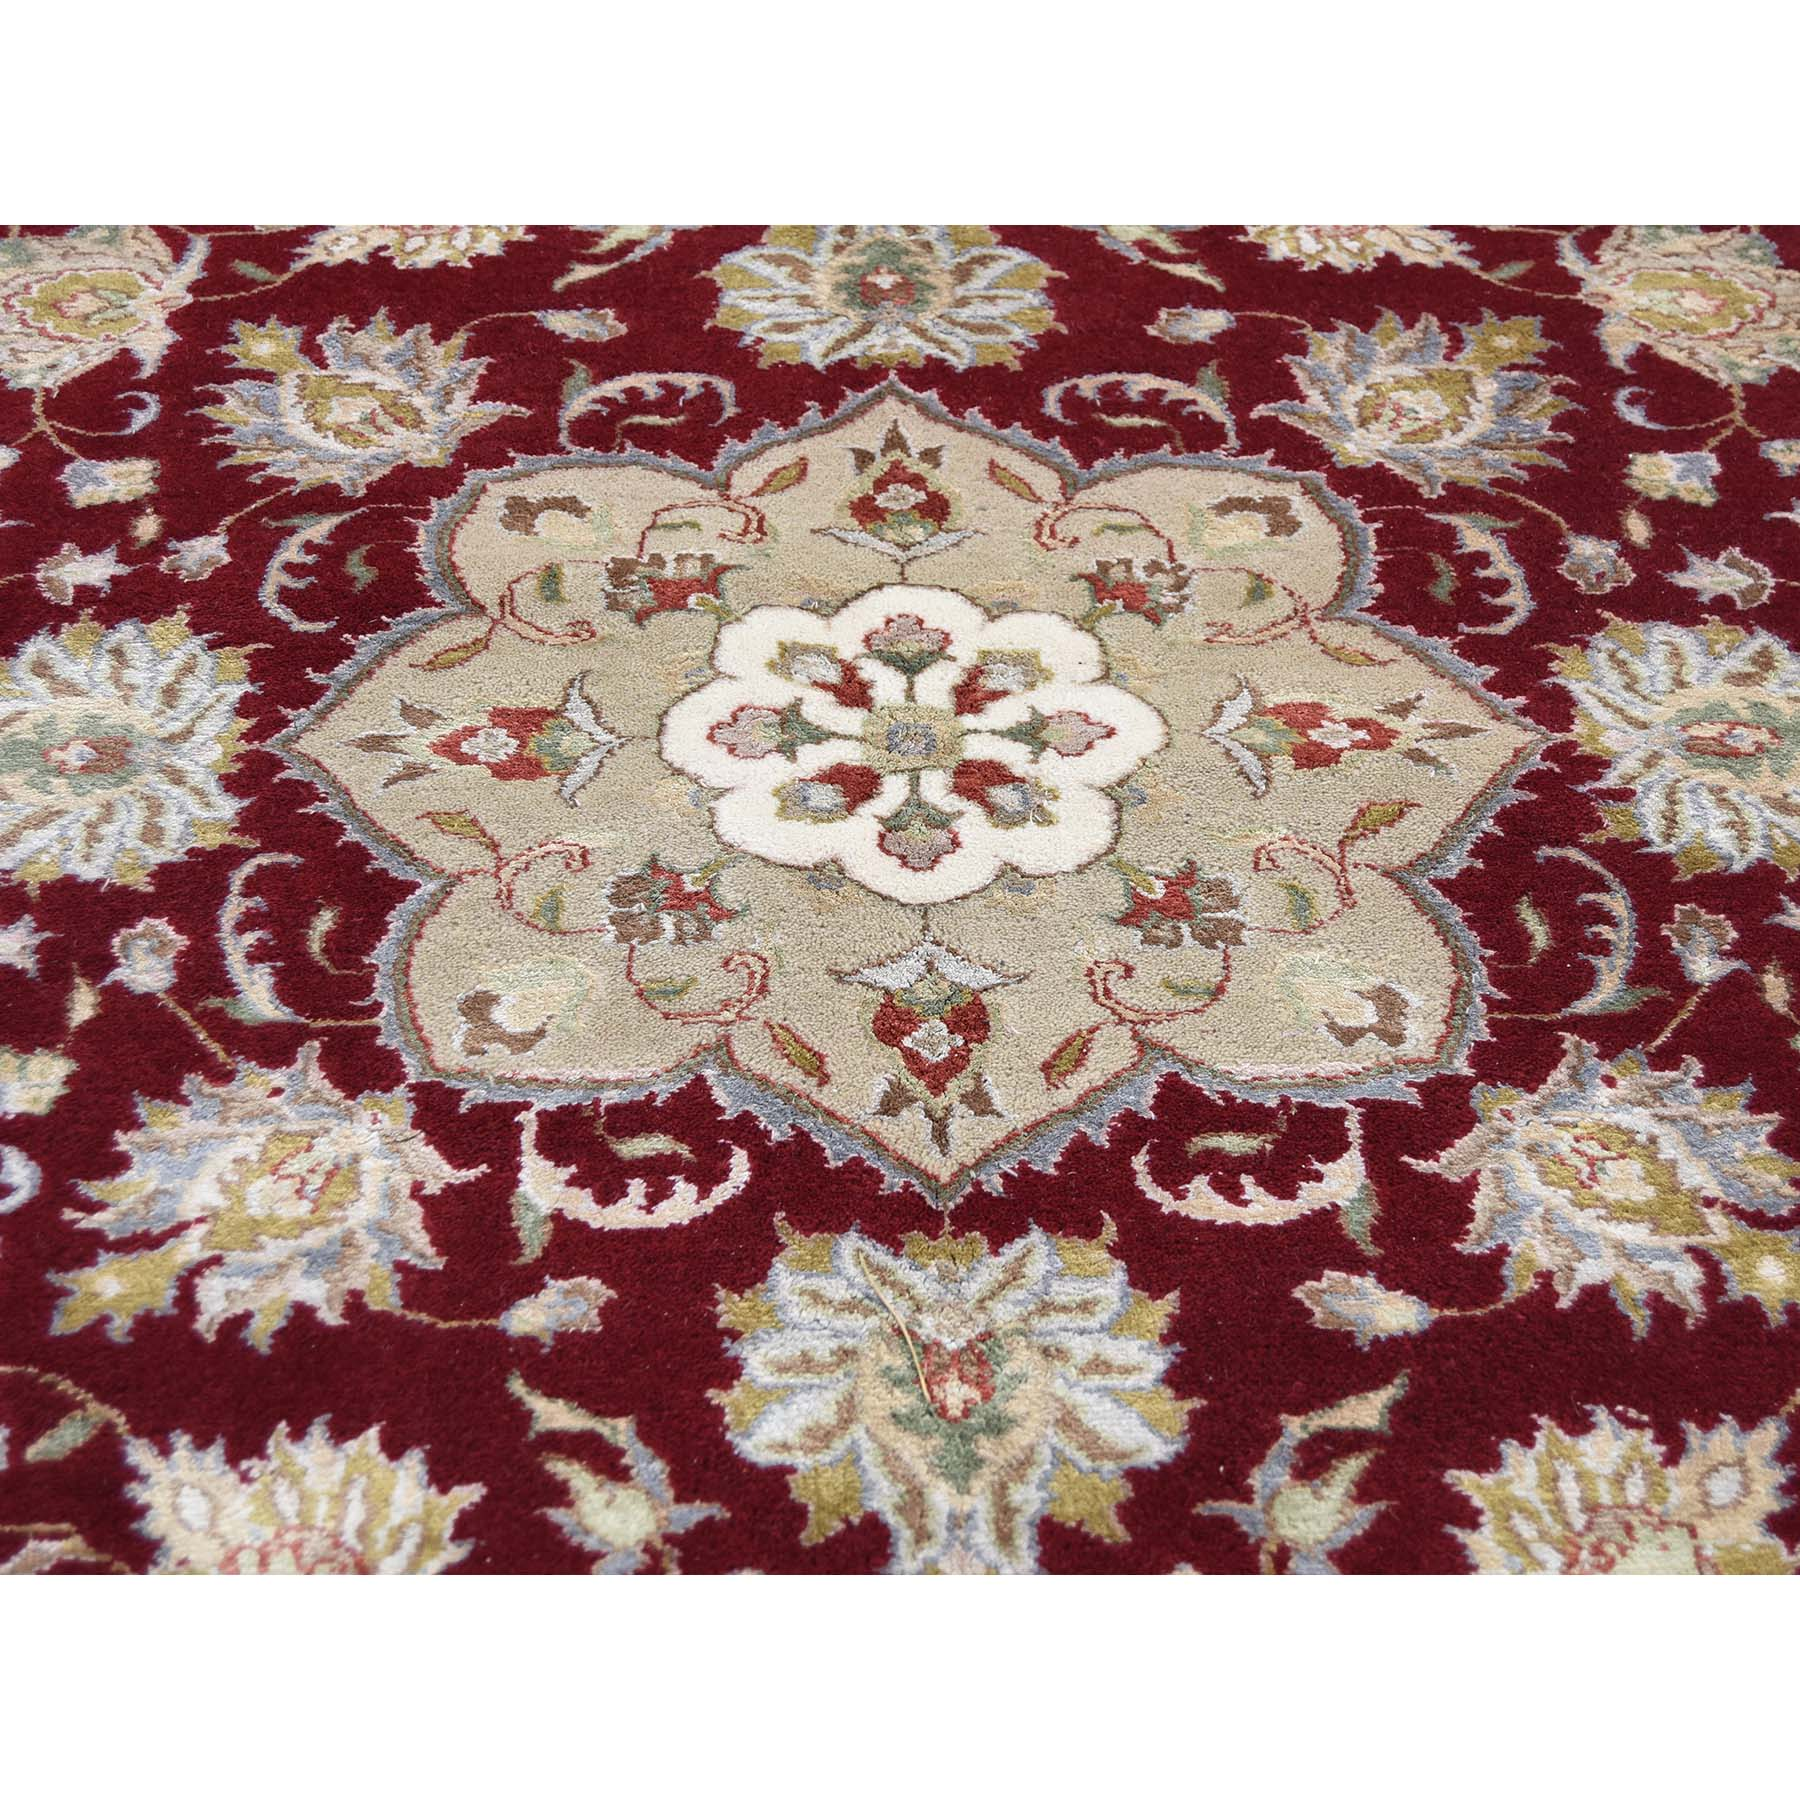 8-1 x11-6  300 Kpsi Kashan Wool and Silk Hand Knotted Oriental Rug